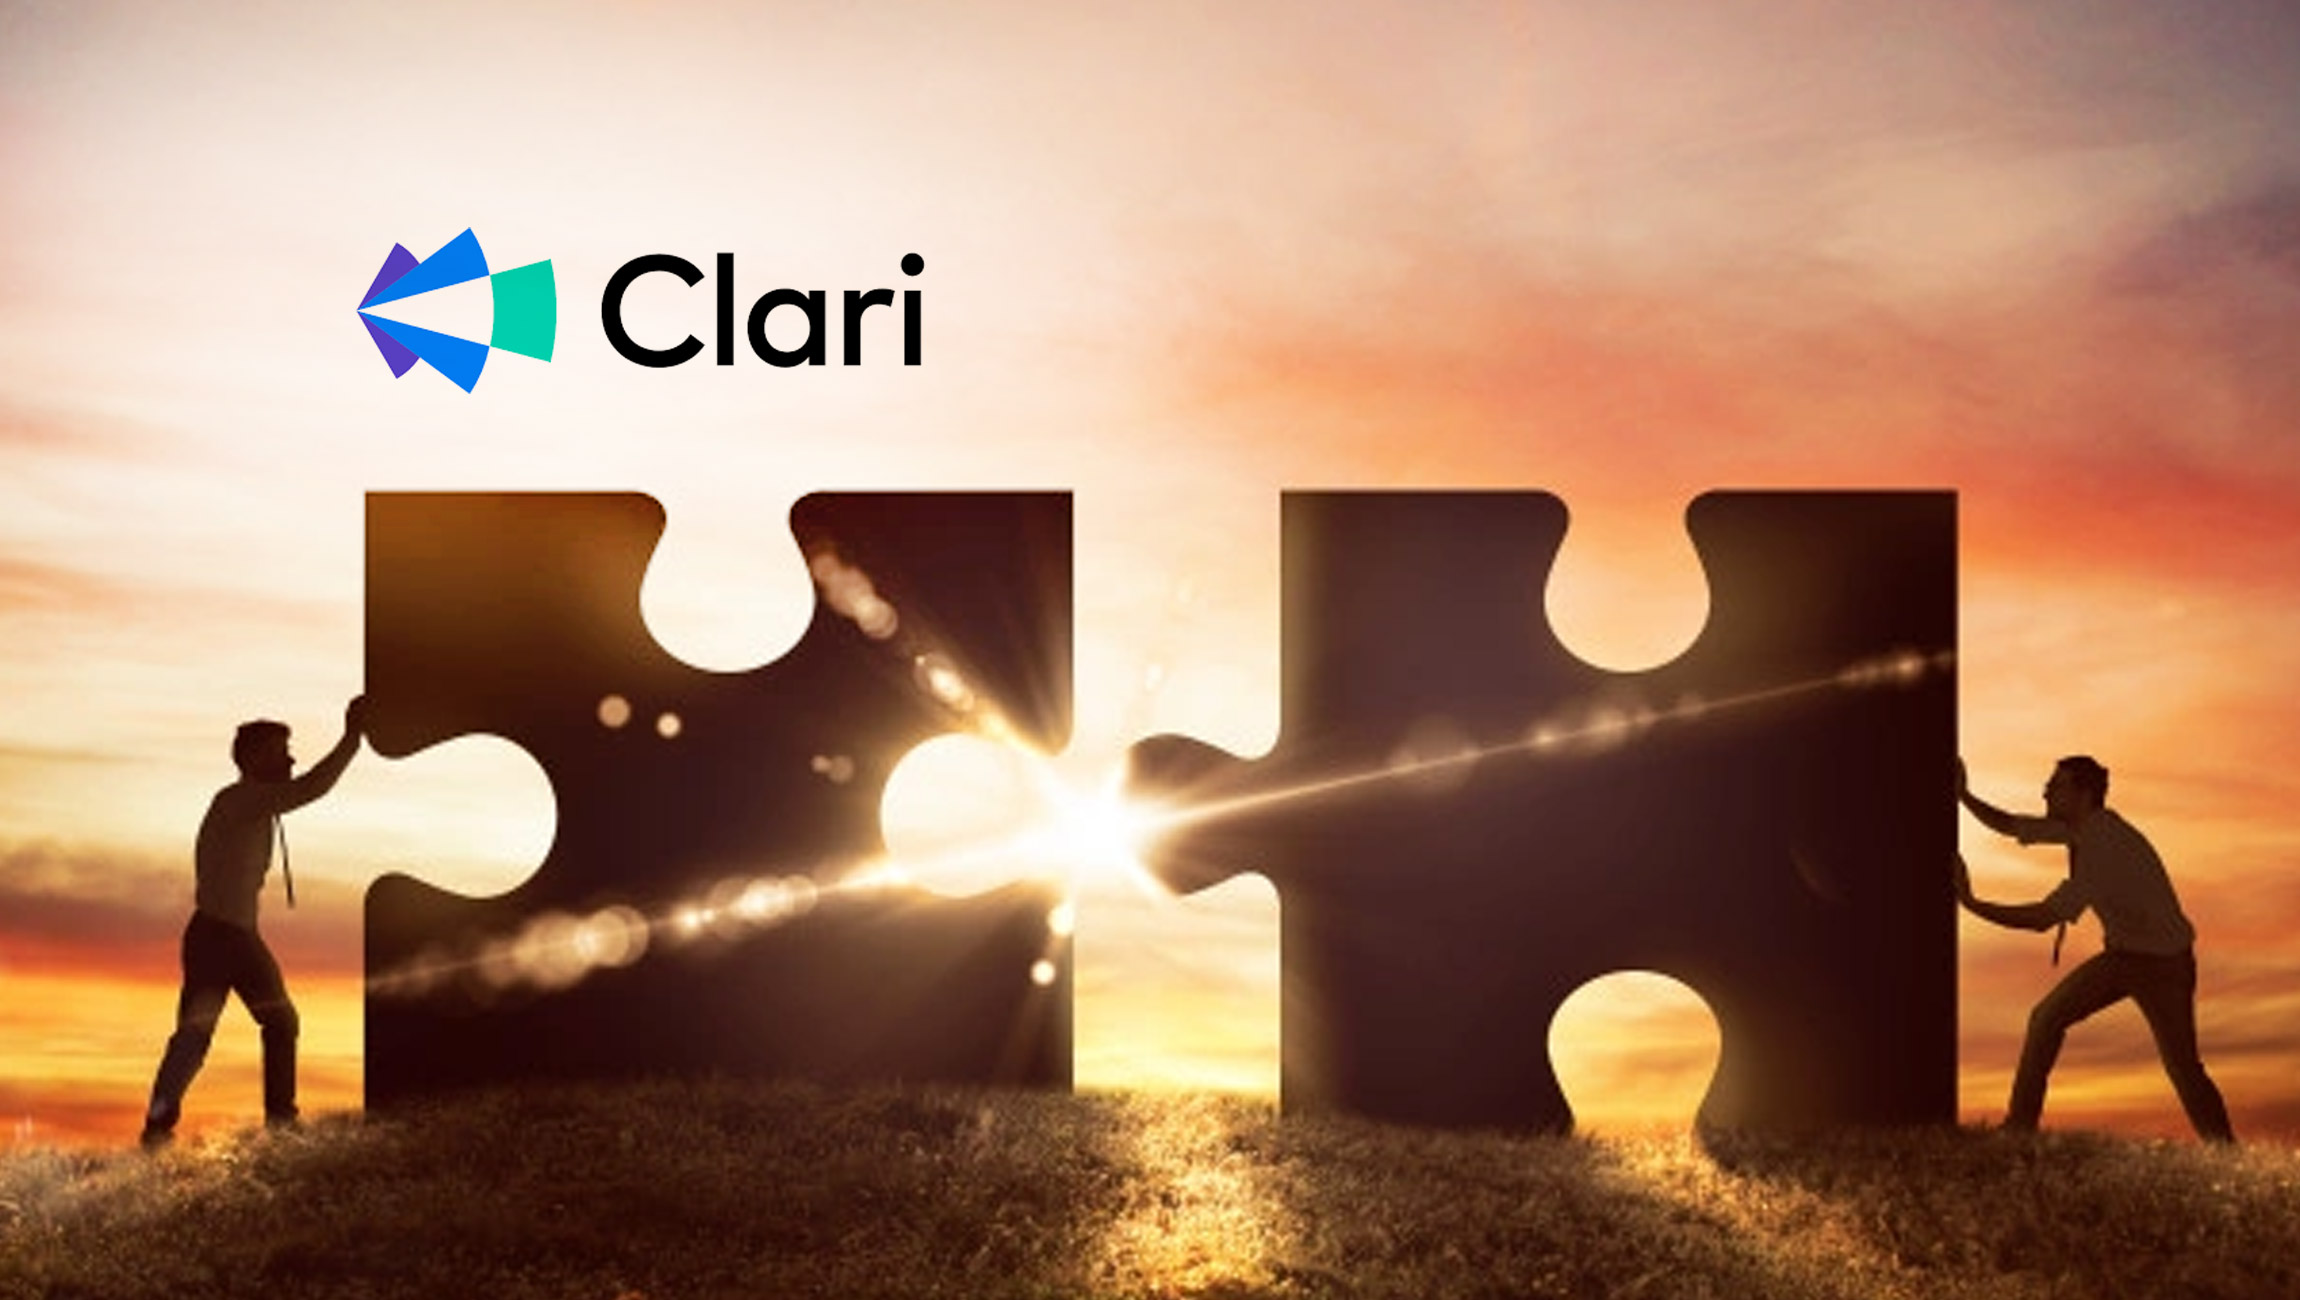 Clari-Announces-Acquisition-and-New-Features-to-Help-Sales-Teams-Win-More-Deals